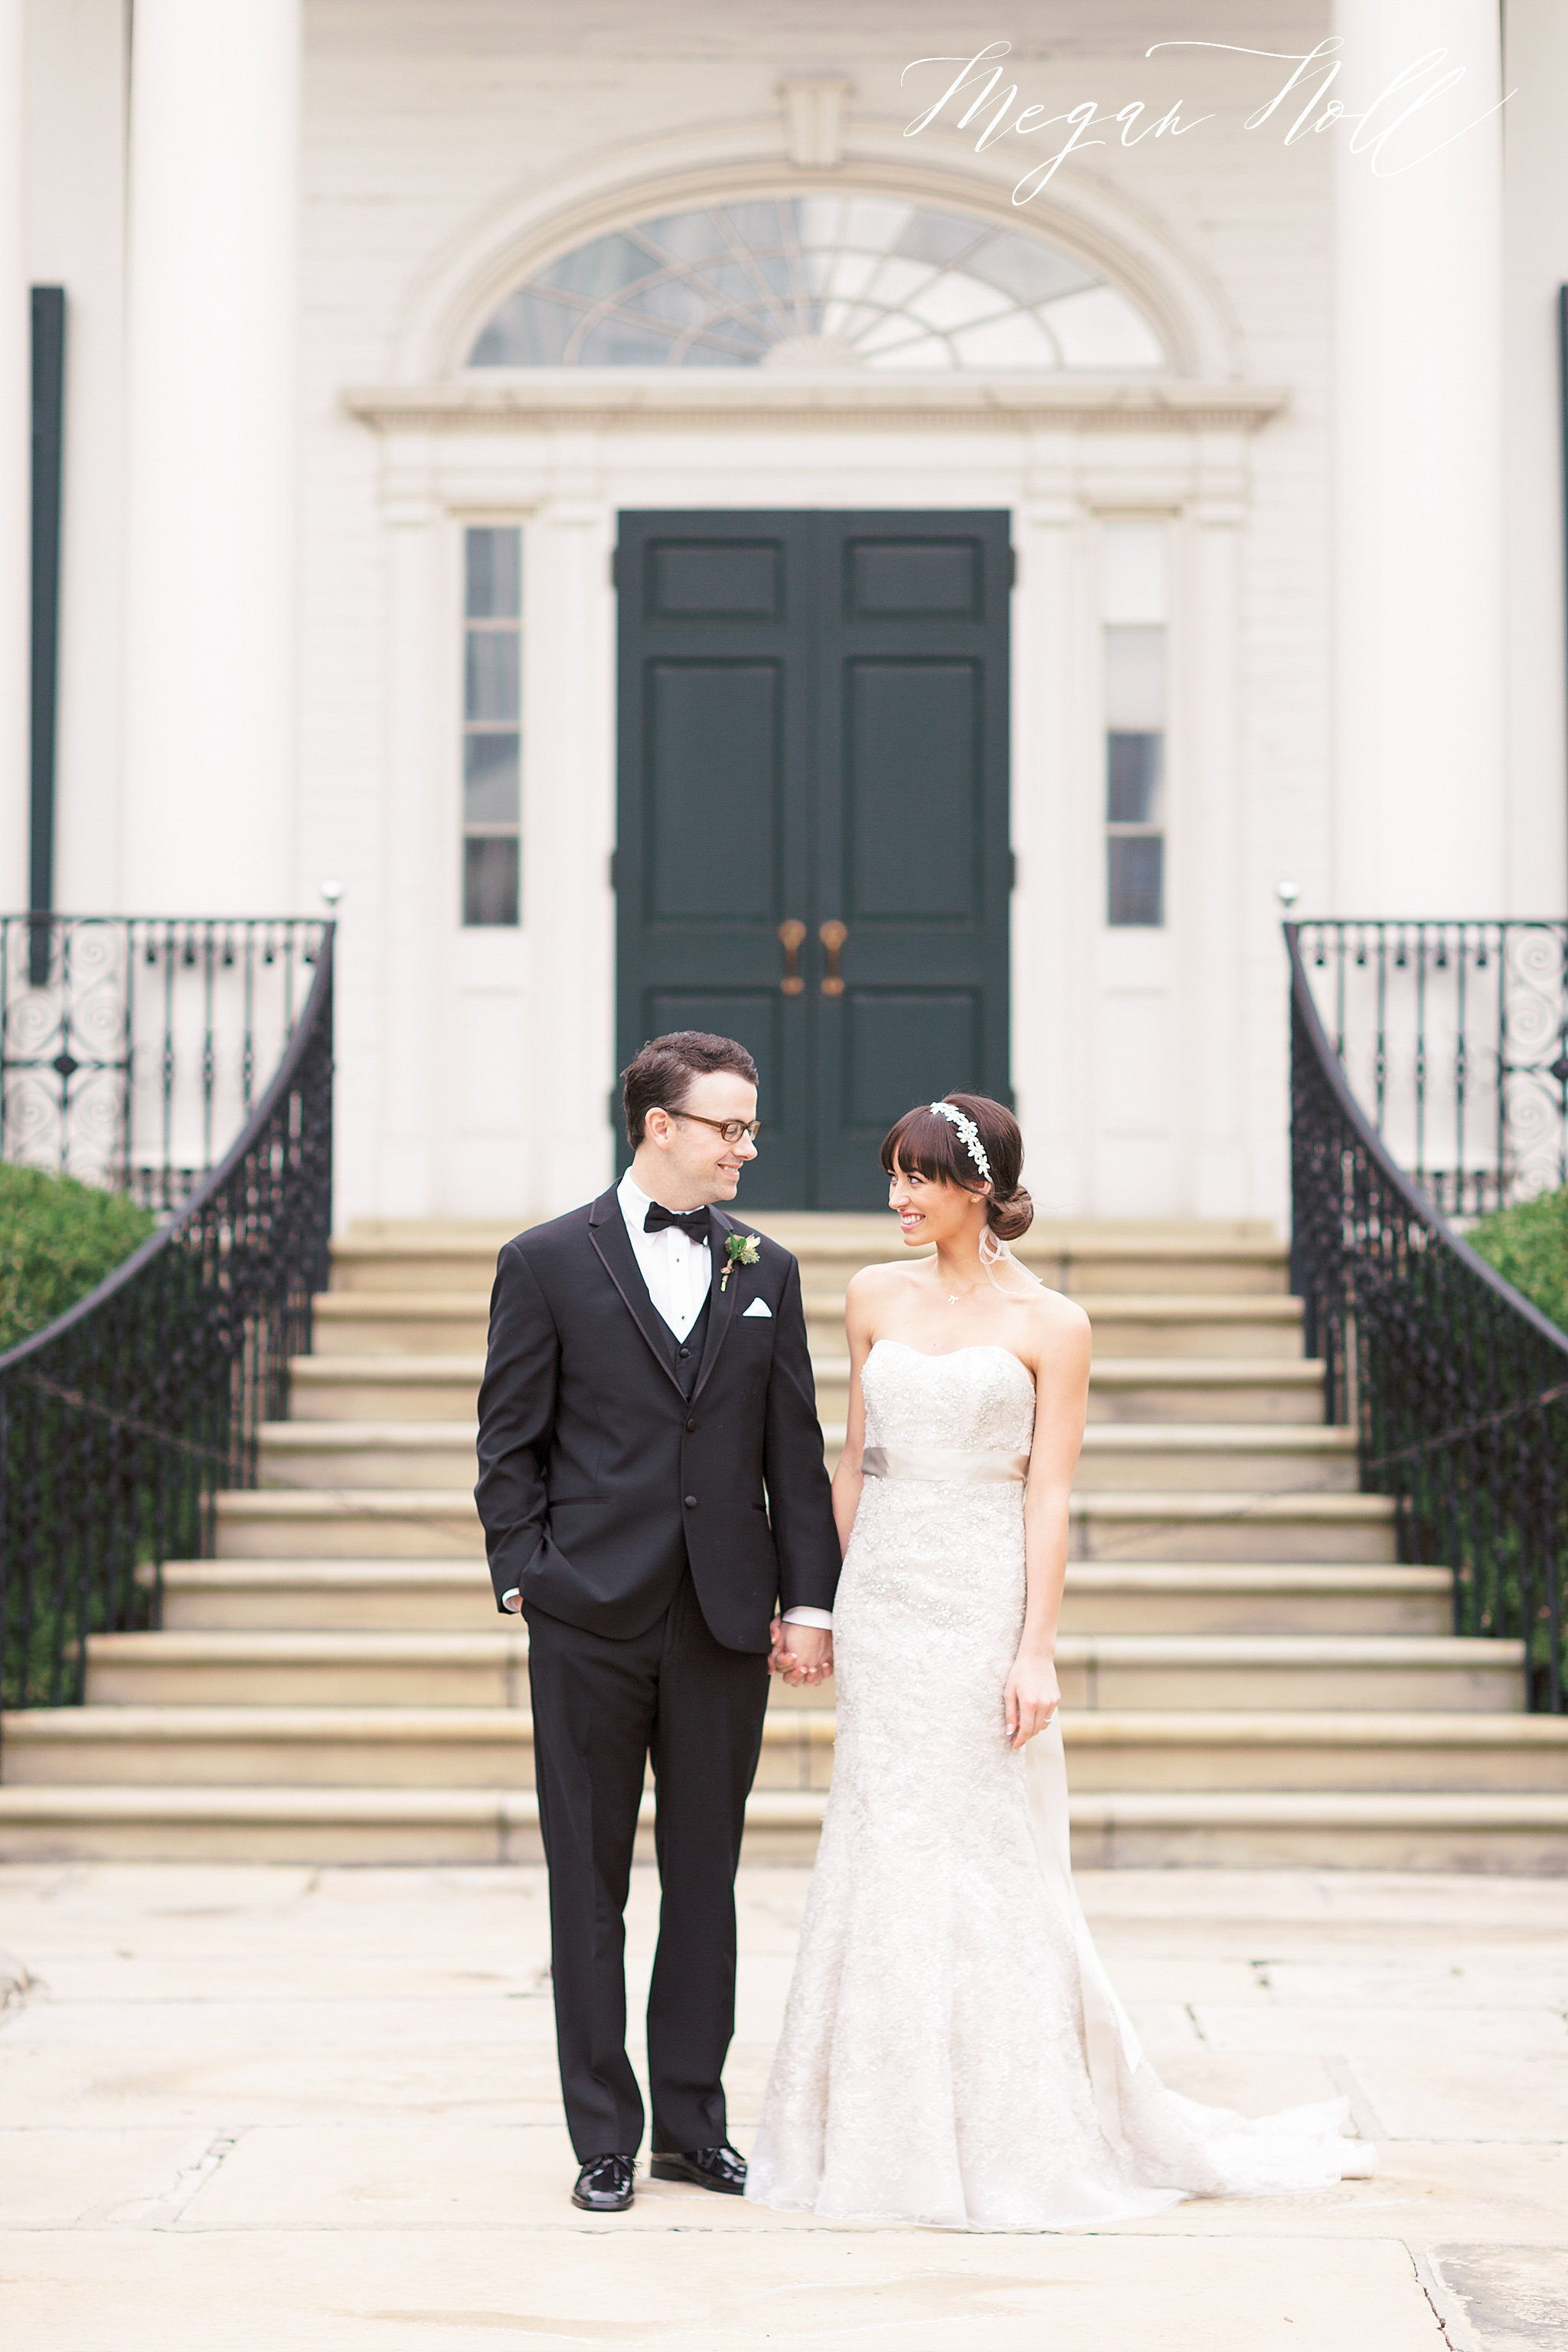 Taft Museum of Art is a top wedding venue in Cincinnati